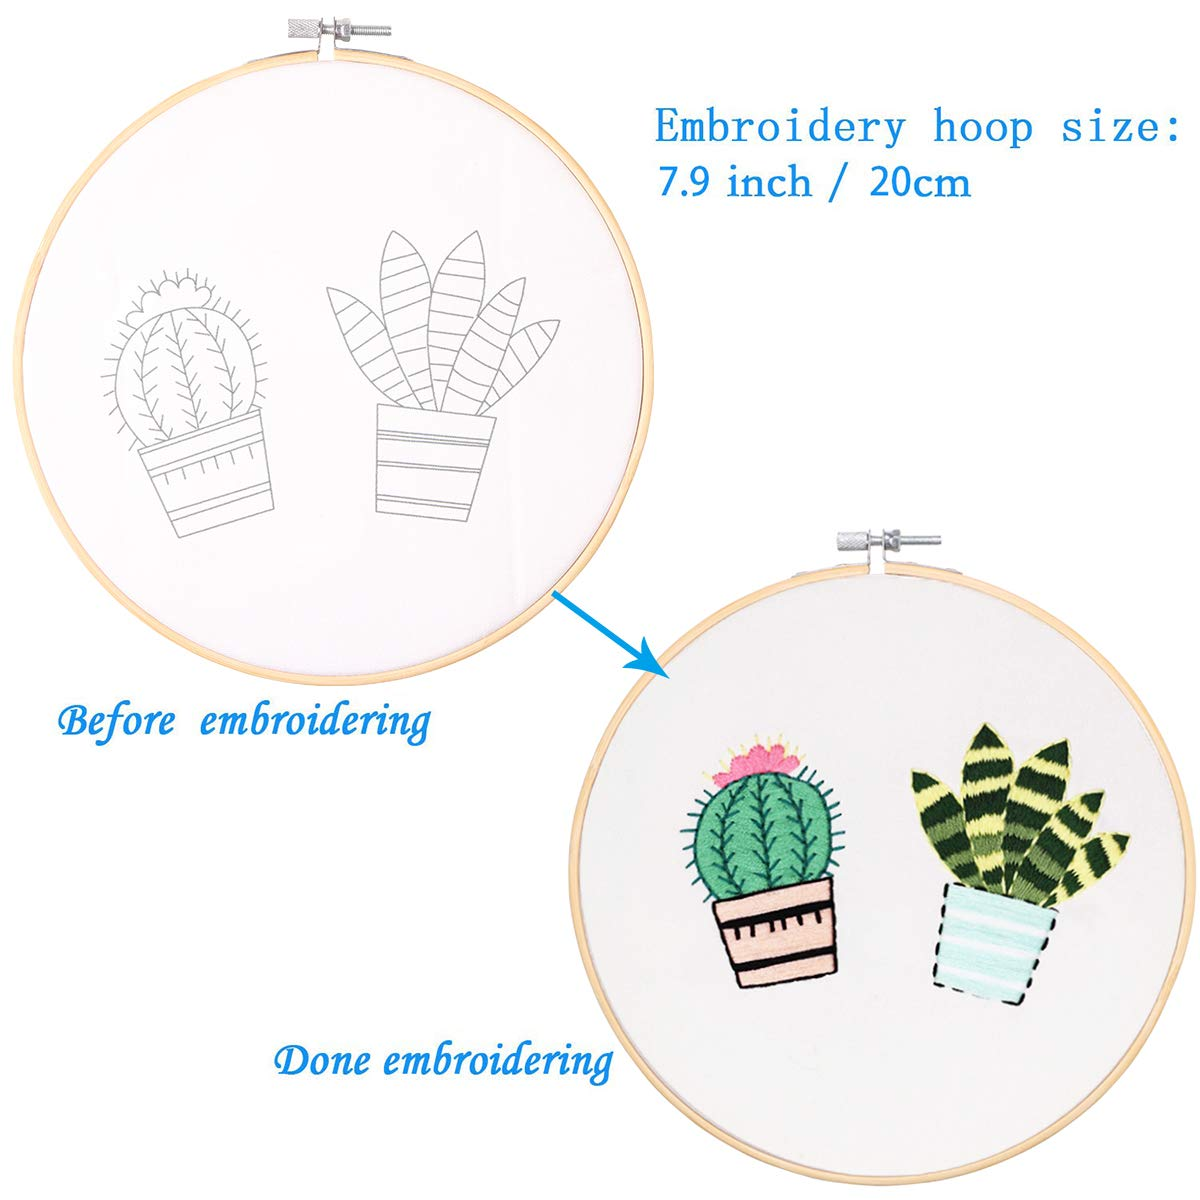 2 Pack Embroidery Starter Kit with Pattern Bamboo Embroidery Hoop Color Threads Tools Kit Plant and Cactus Kissbuty Full Range of Stamped Embroidery Kit Including Embroidery Cloth with Pattern